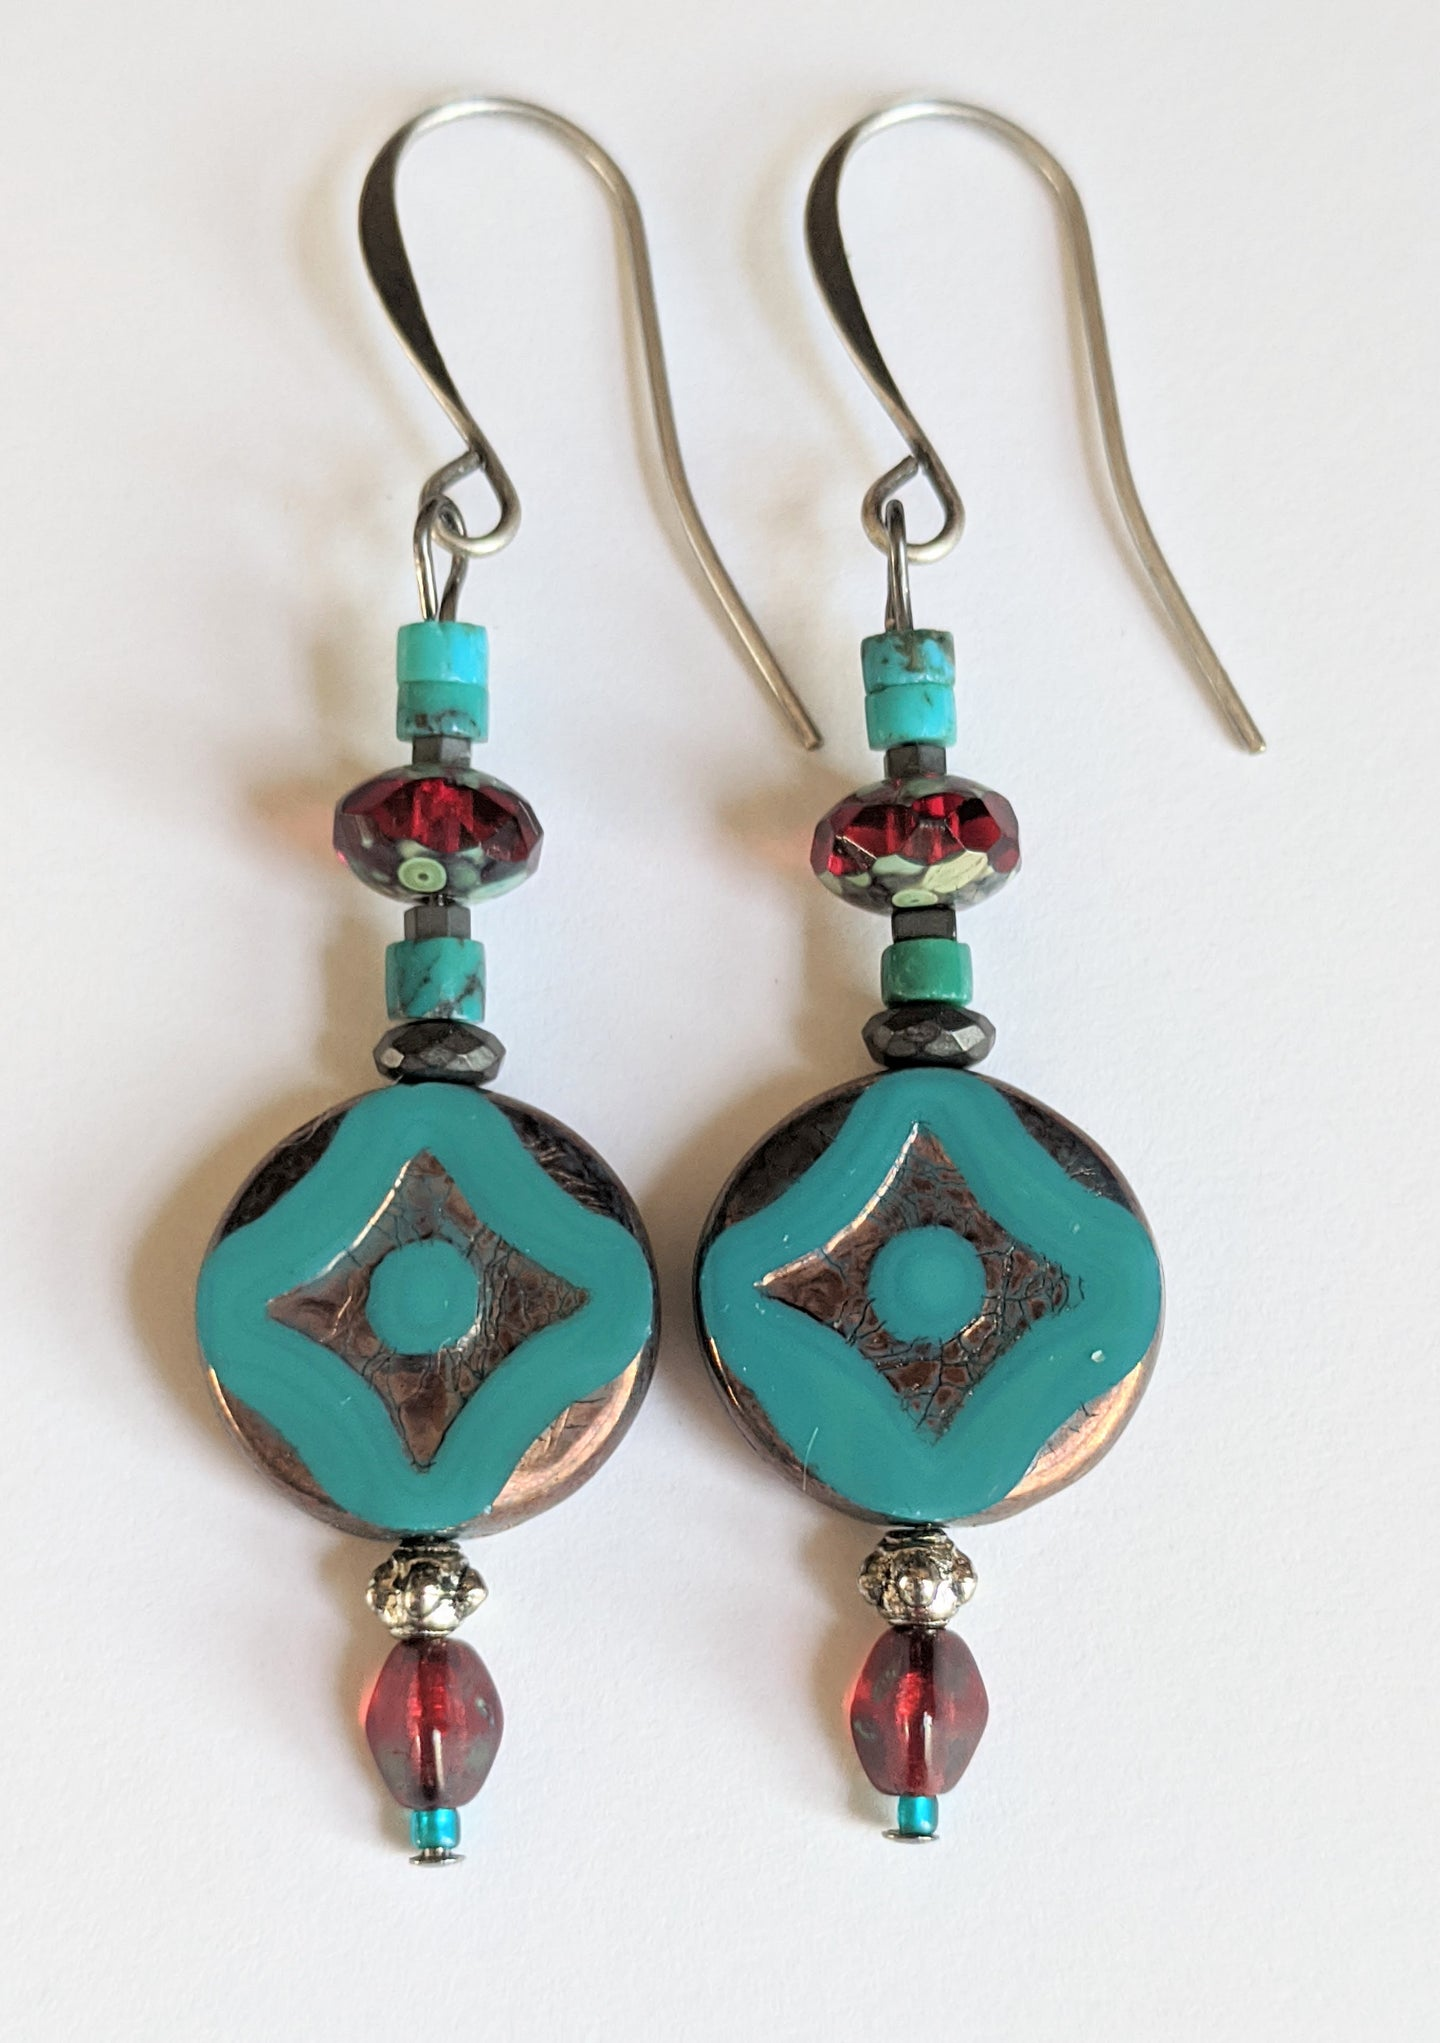 mosaic tile earrings # 10 - sunroot studio